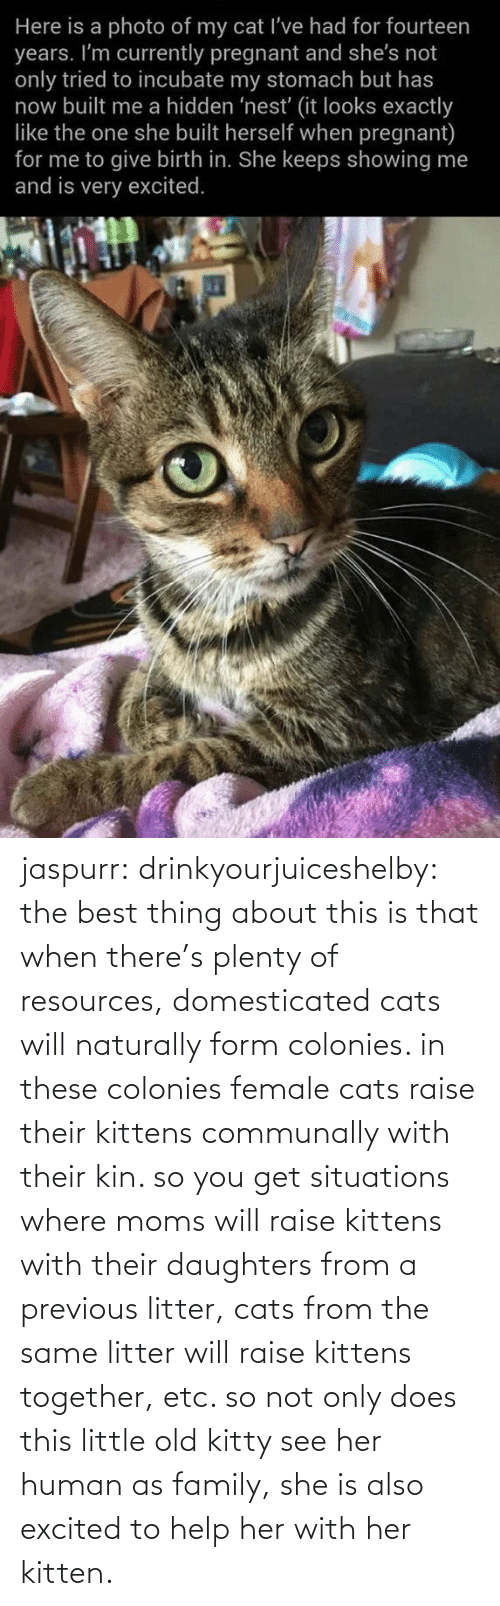 Width: jaspurr:  drinkyourjuiceshelby:    the best thing about this is that when there's plenty of resources, domesticated cats will naturally form colonies. in these colonies female cats raise their kittens communally with their kin. so you get situations where moms will raise kittens with their daughters from a previous litter, cats from the same litter will raise kittens together, etc. so not only does this little old kitty see her human as family, she is also excited to help her with her kitten.